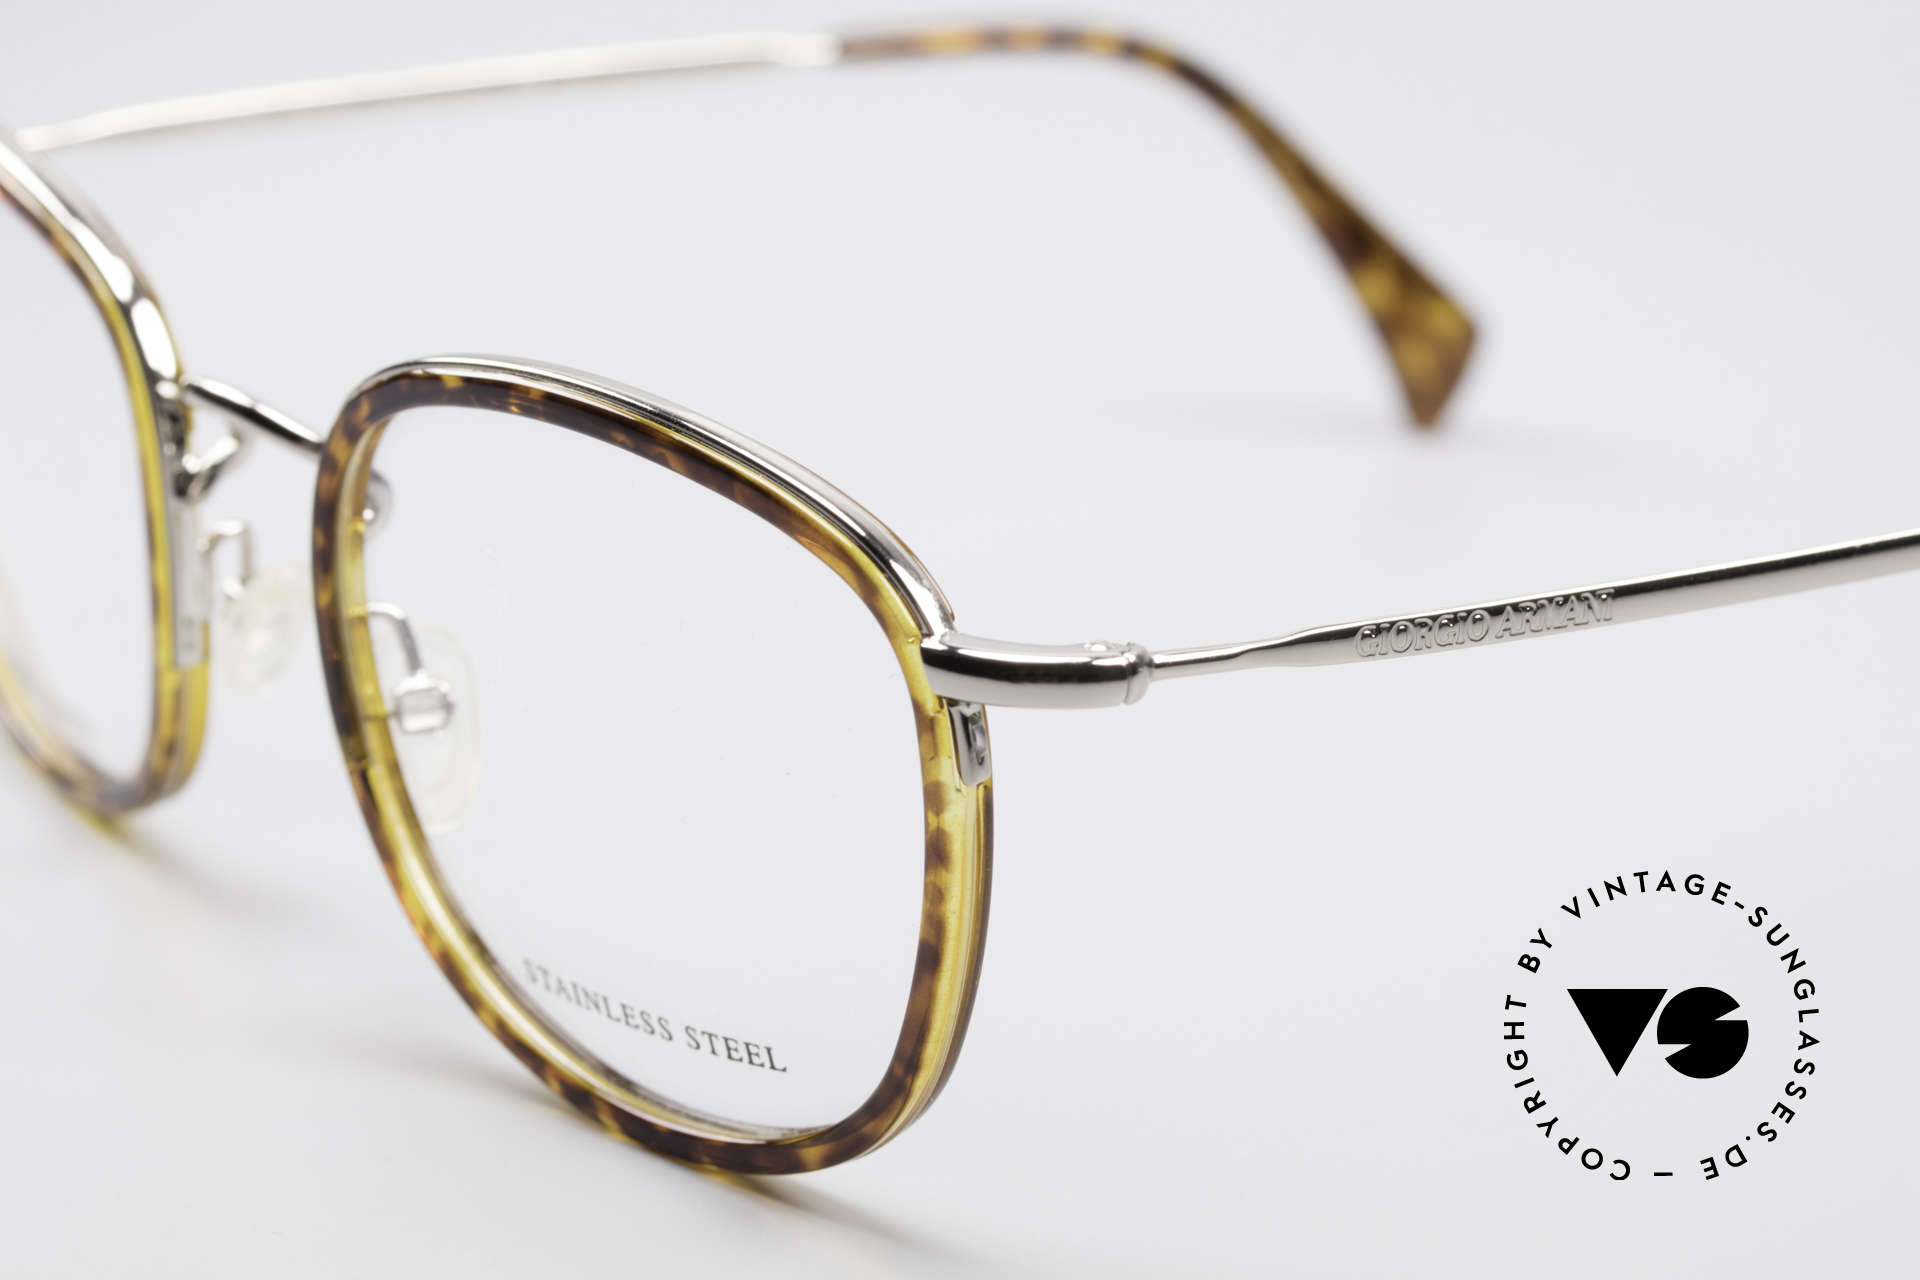 Giorgio Armani 863 Square Panto Eyeglass-Frame, unworn, NOS, one of a kind and outstanding quality, Made for Men